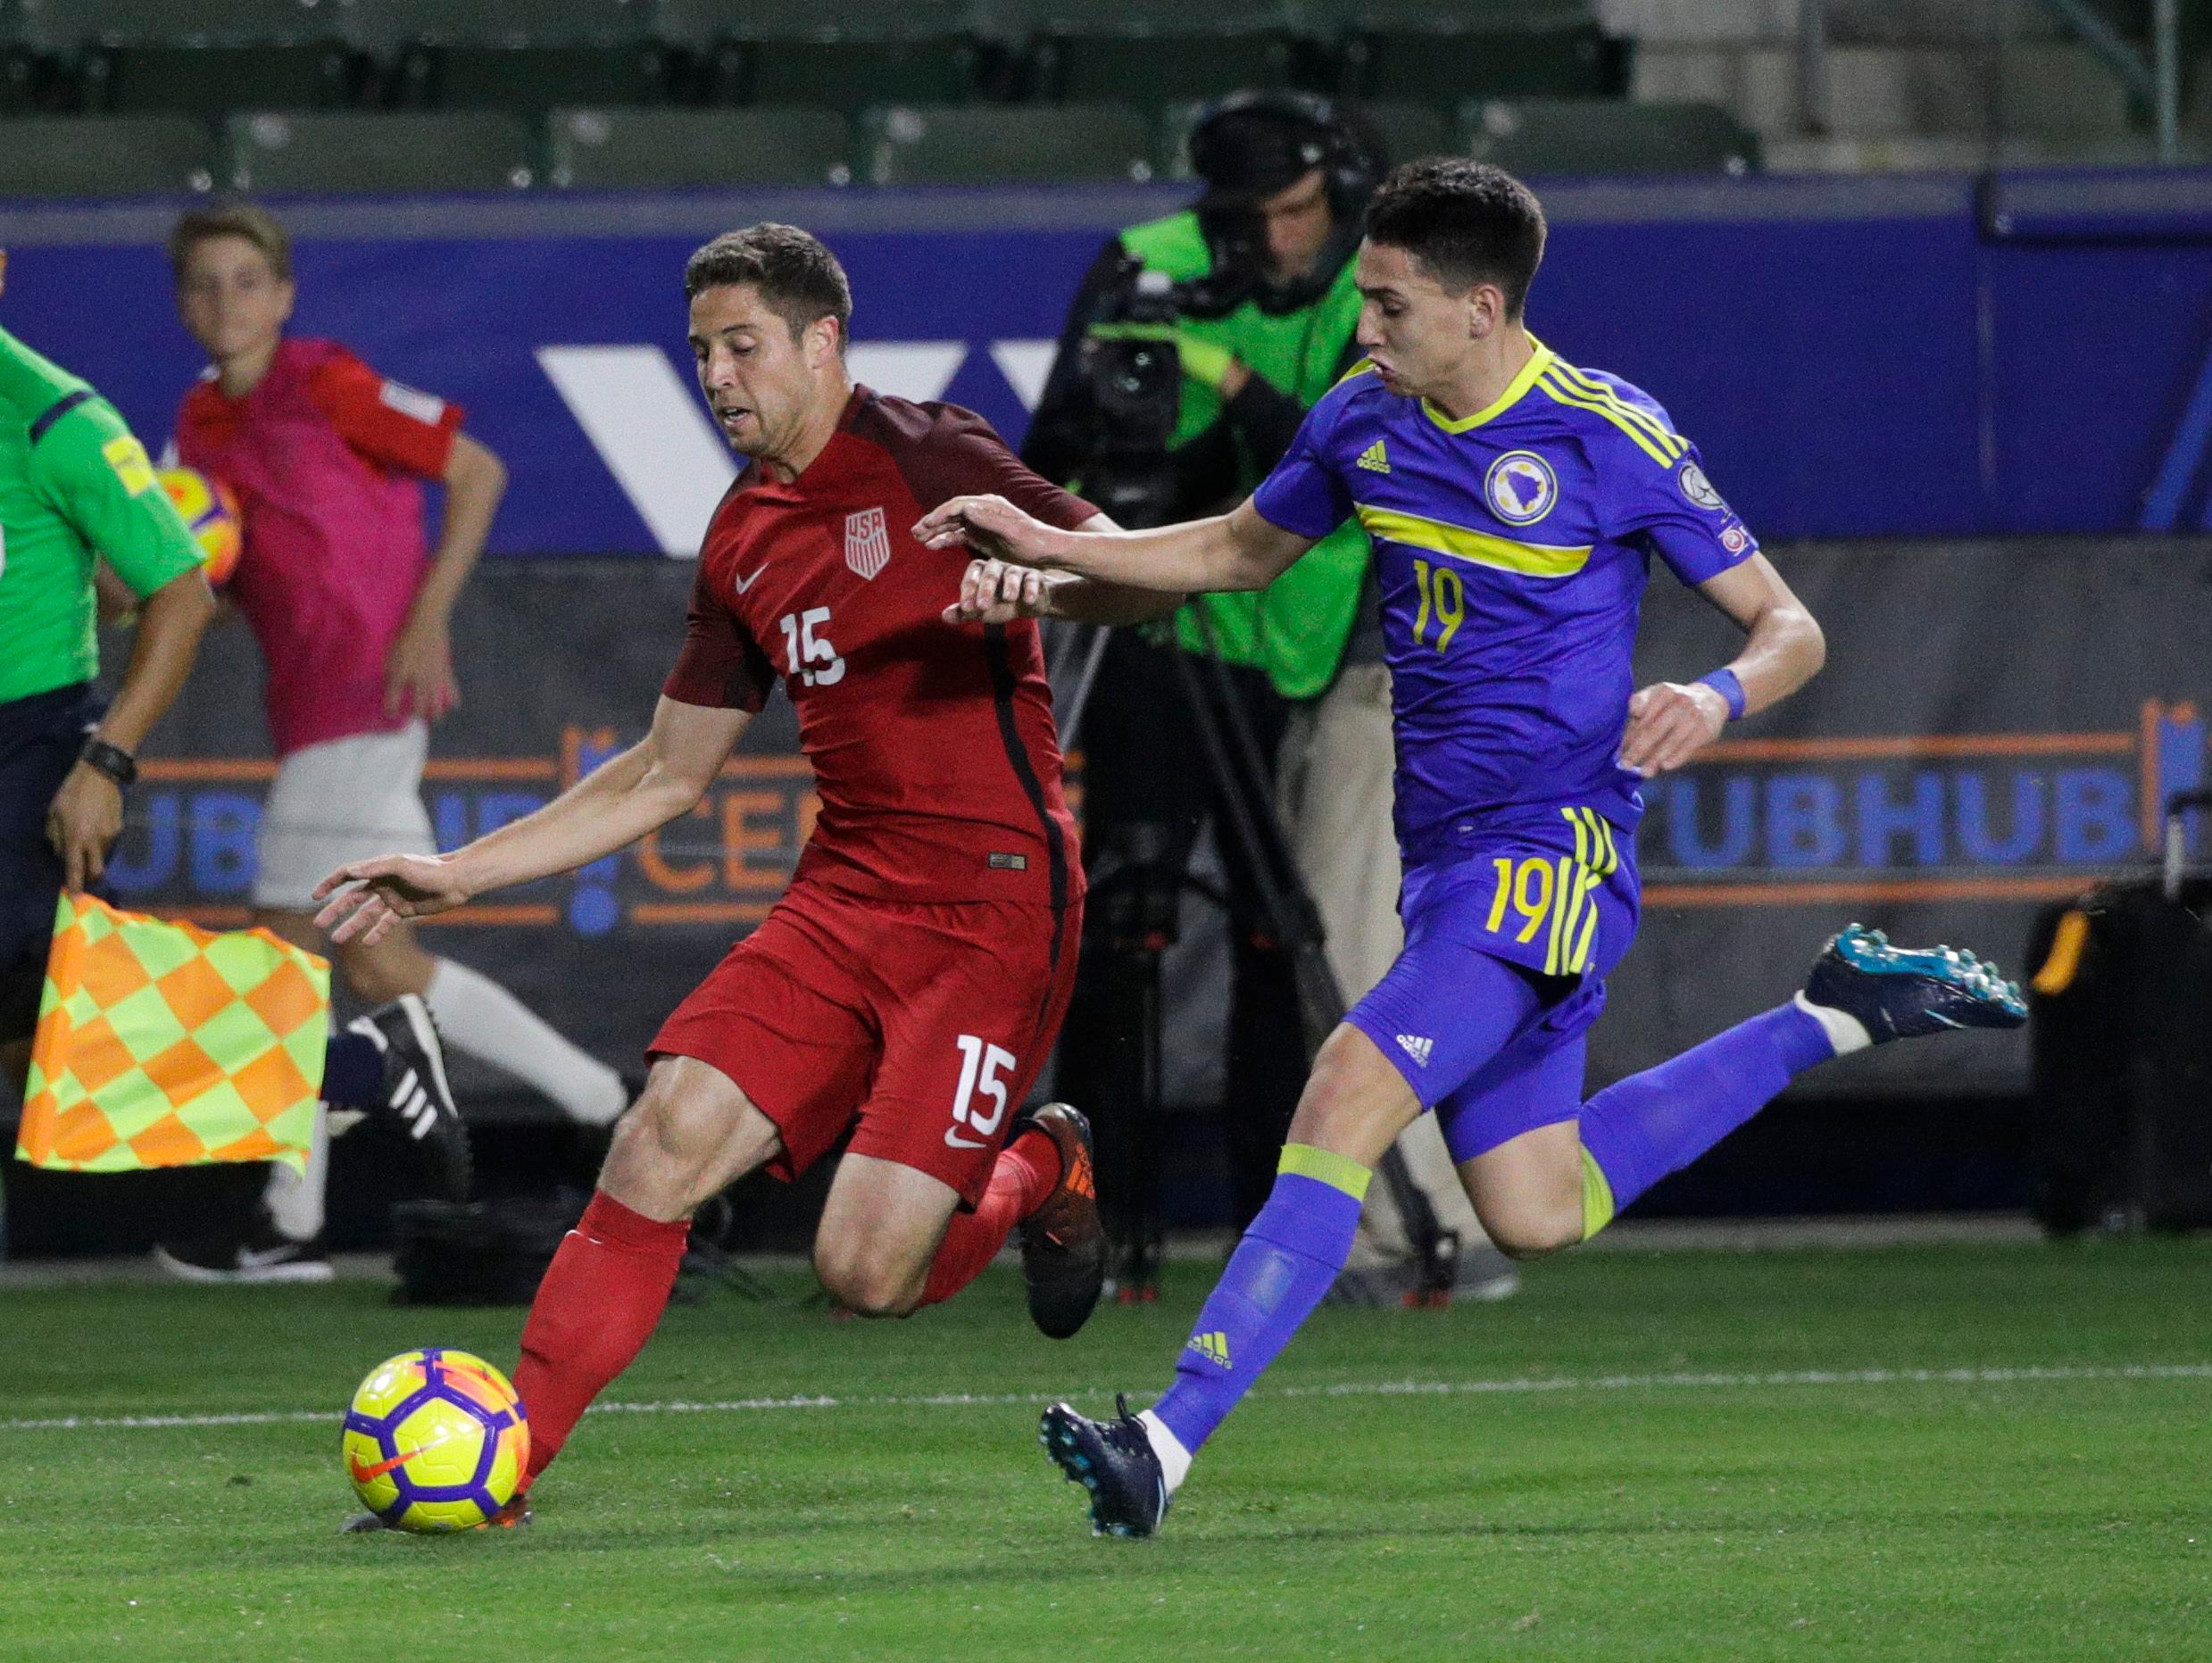 United States defender Matt Polster, left, controls the ball under pressure by Bosnia and Herzegovina forward Luka Menalo during the first half of an international friendly soccer match on Sunday, Jan. 28, 2018, in Carson, Calif. (AP Photo/Jae C. Hong)